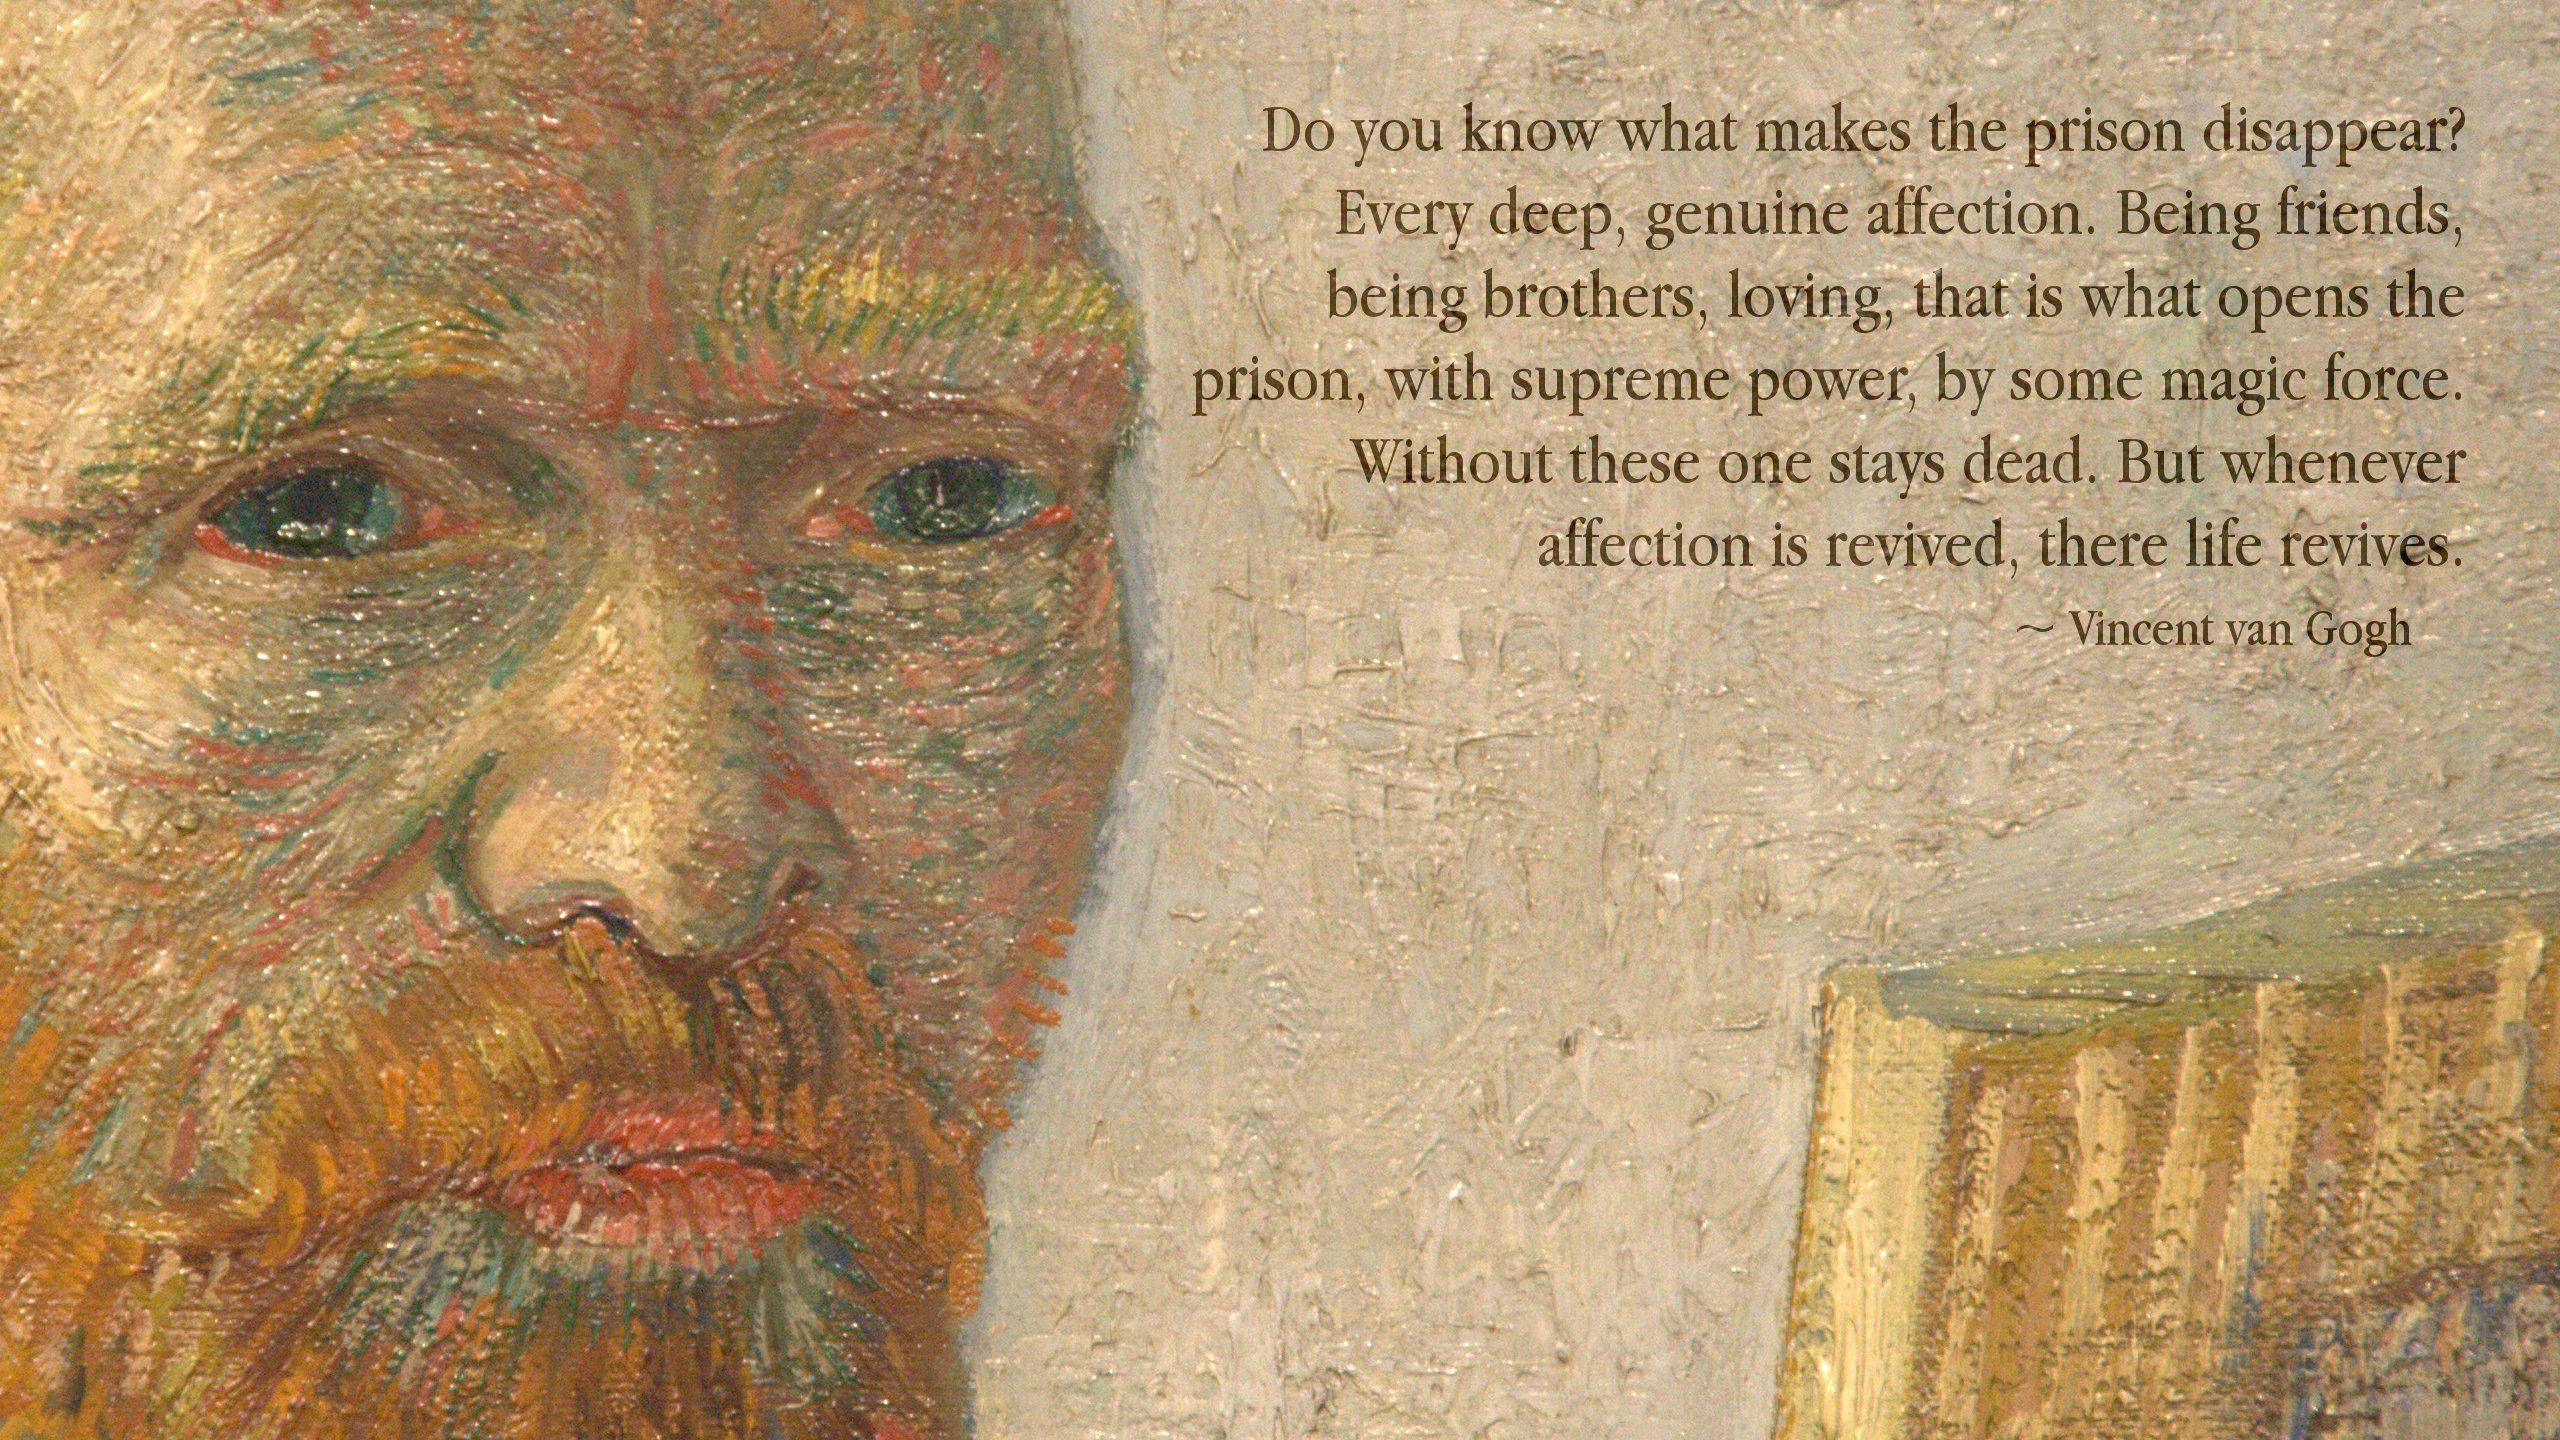 vincent van gogh essay Vincent van gogh (1853-1890) is a great dutch artist, a vivid representative of post-impressionism his creative path was short-lived but very fruitful: for more than ten years he created about 2000 unusual paintings.